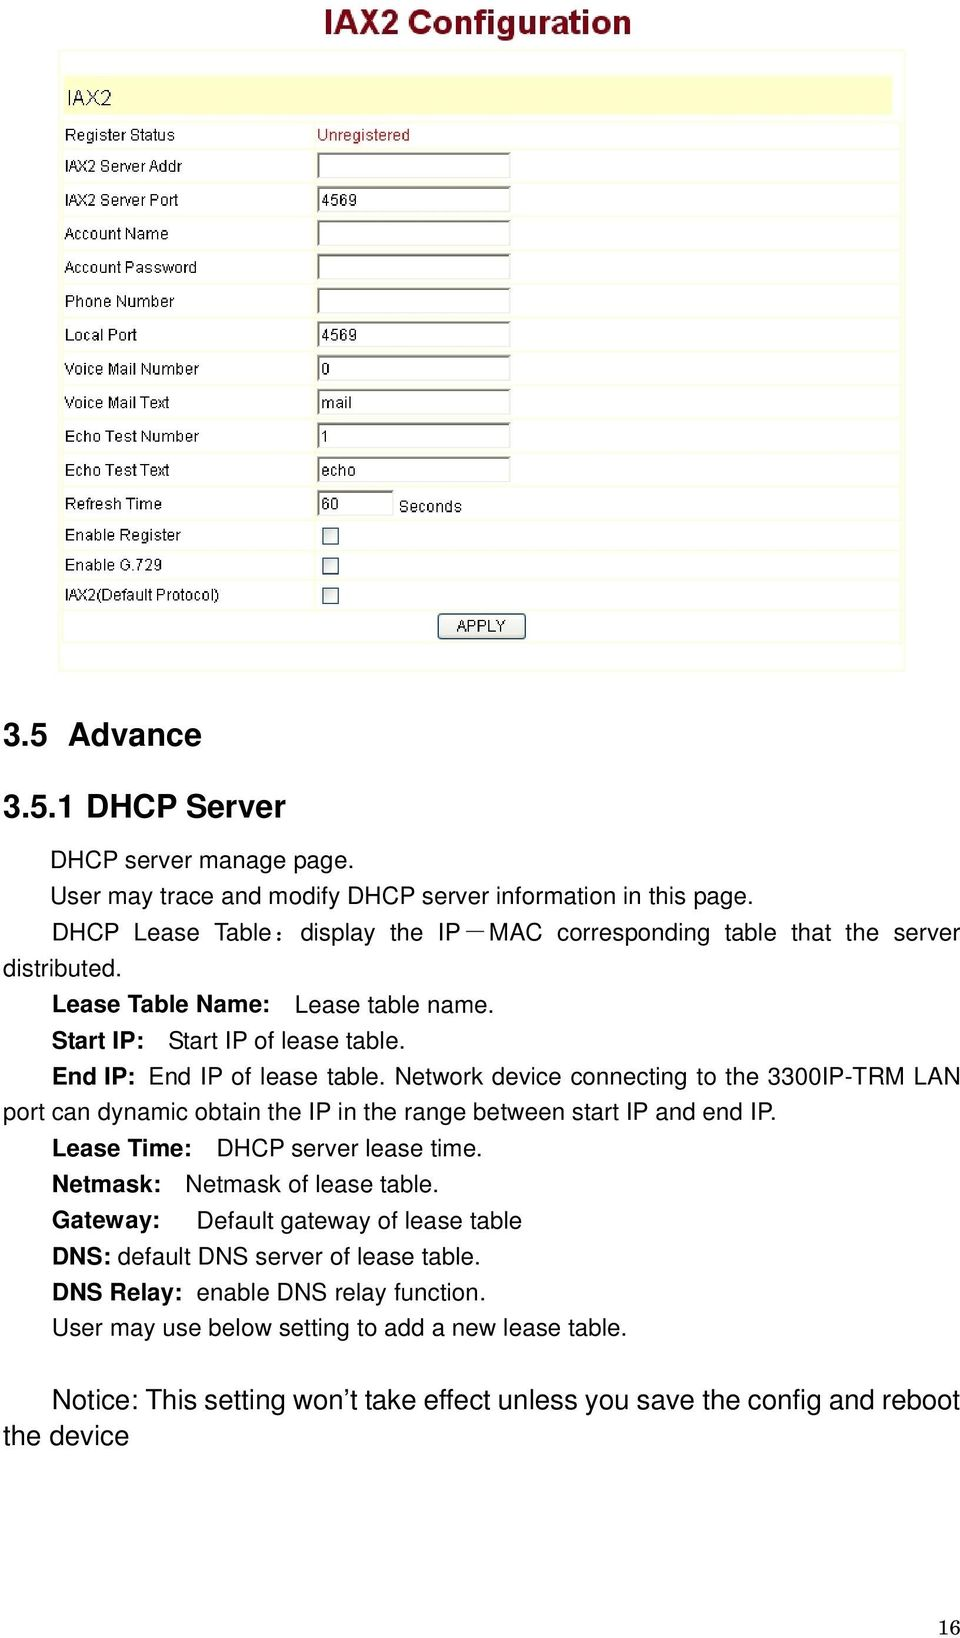 Network device connecting to the 3300IP-TRM LAN port can dynamic obtain the IP in the range between start IP and end IP. Lease Time: DHCP server lease time. Netmask: Netmask of lease table.